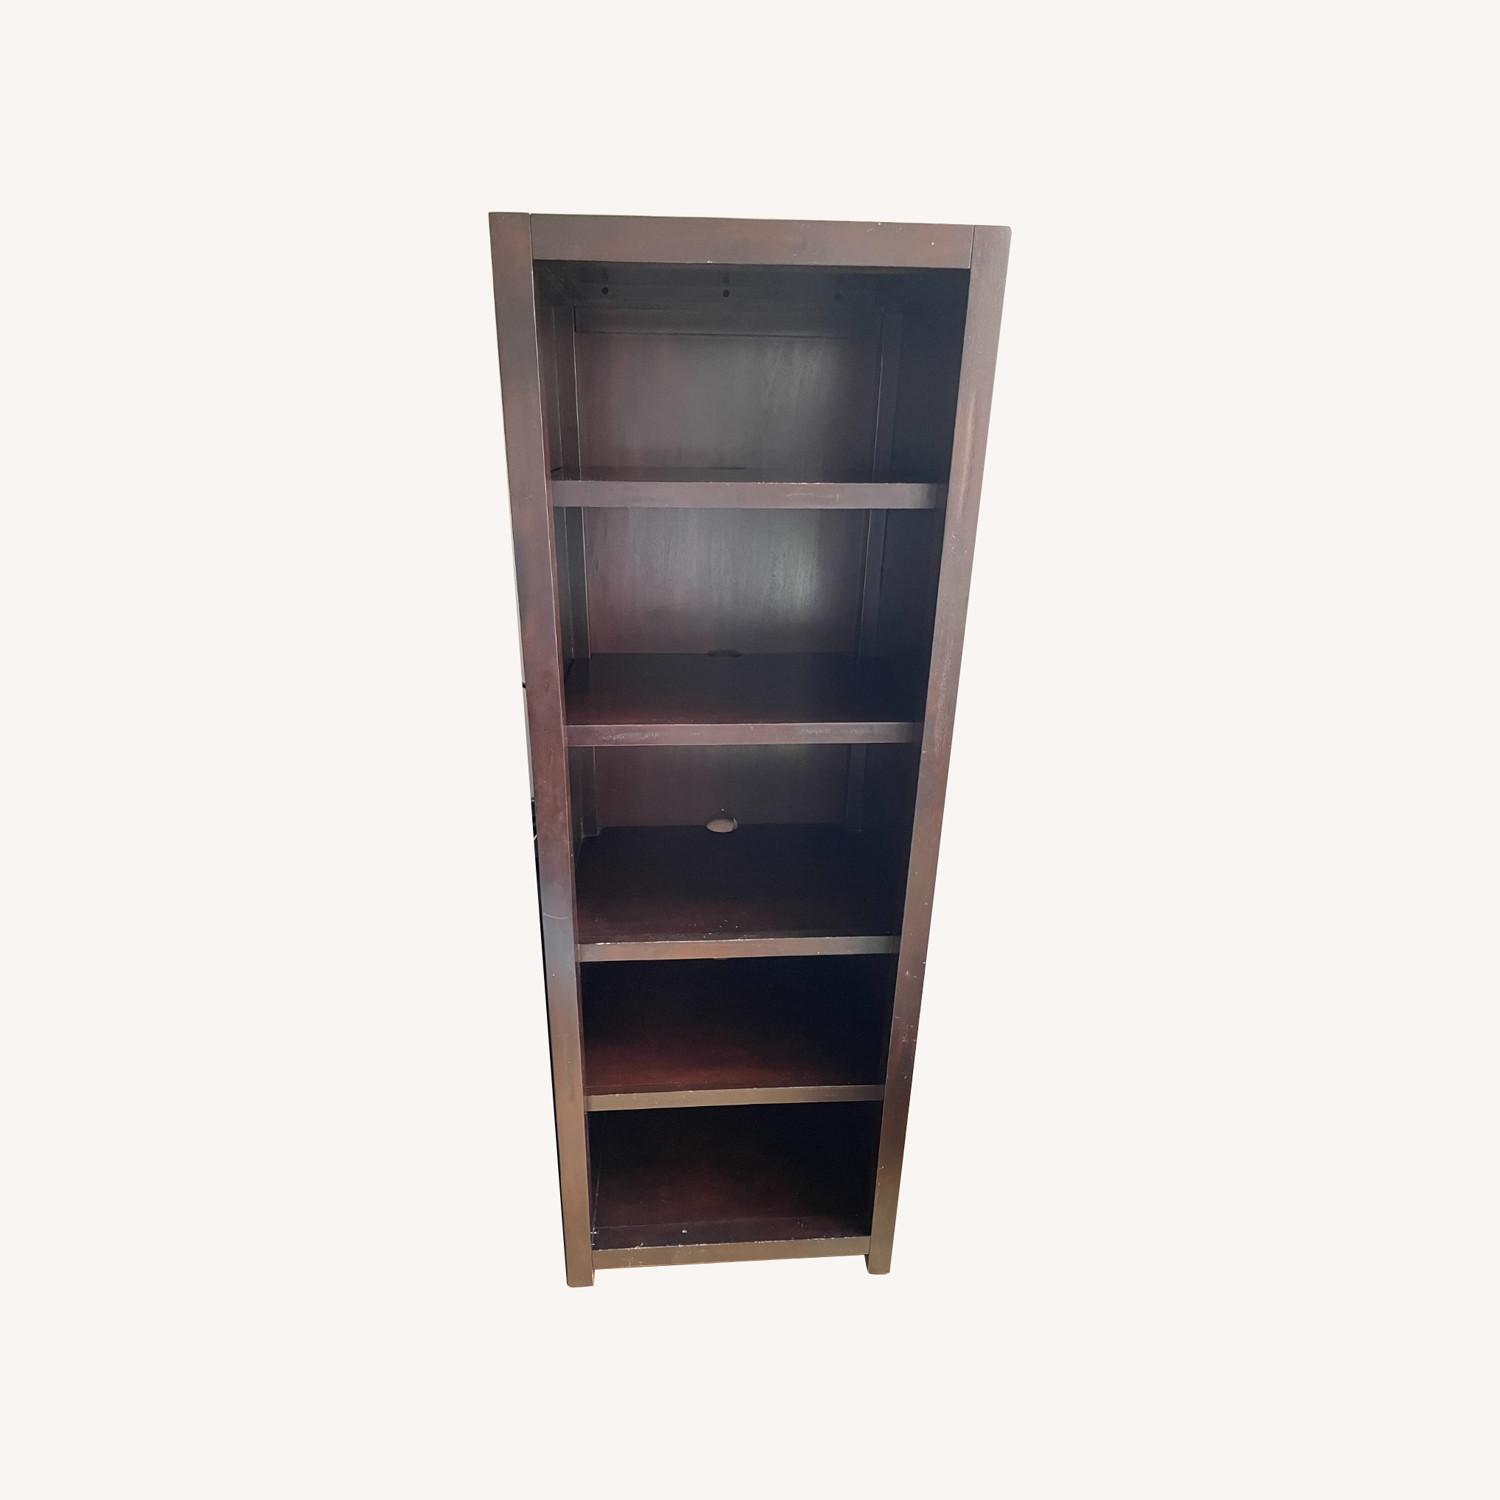 Pottery Barn Bookcases - image-0